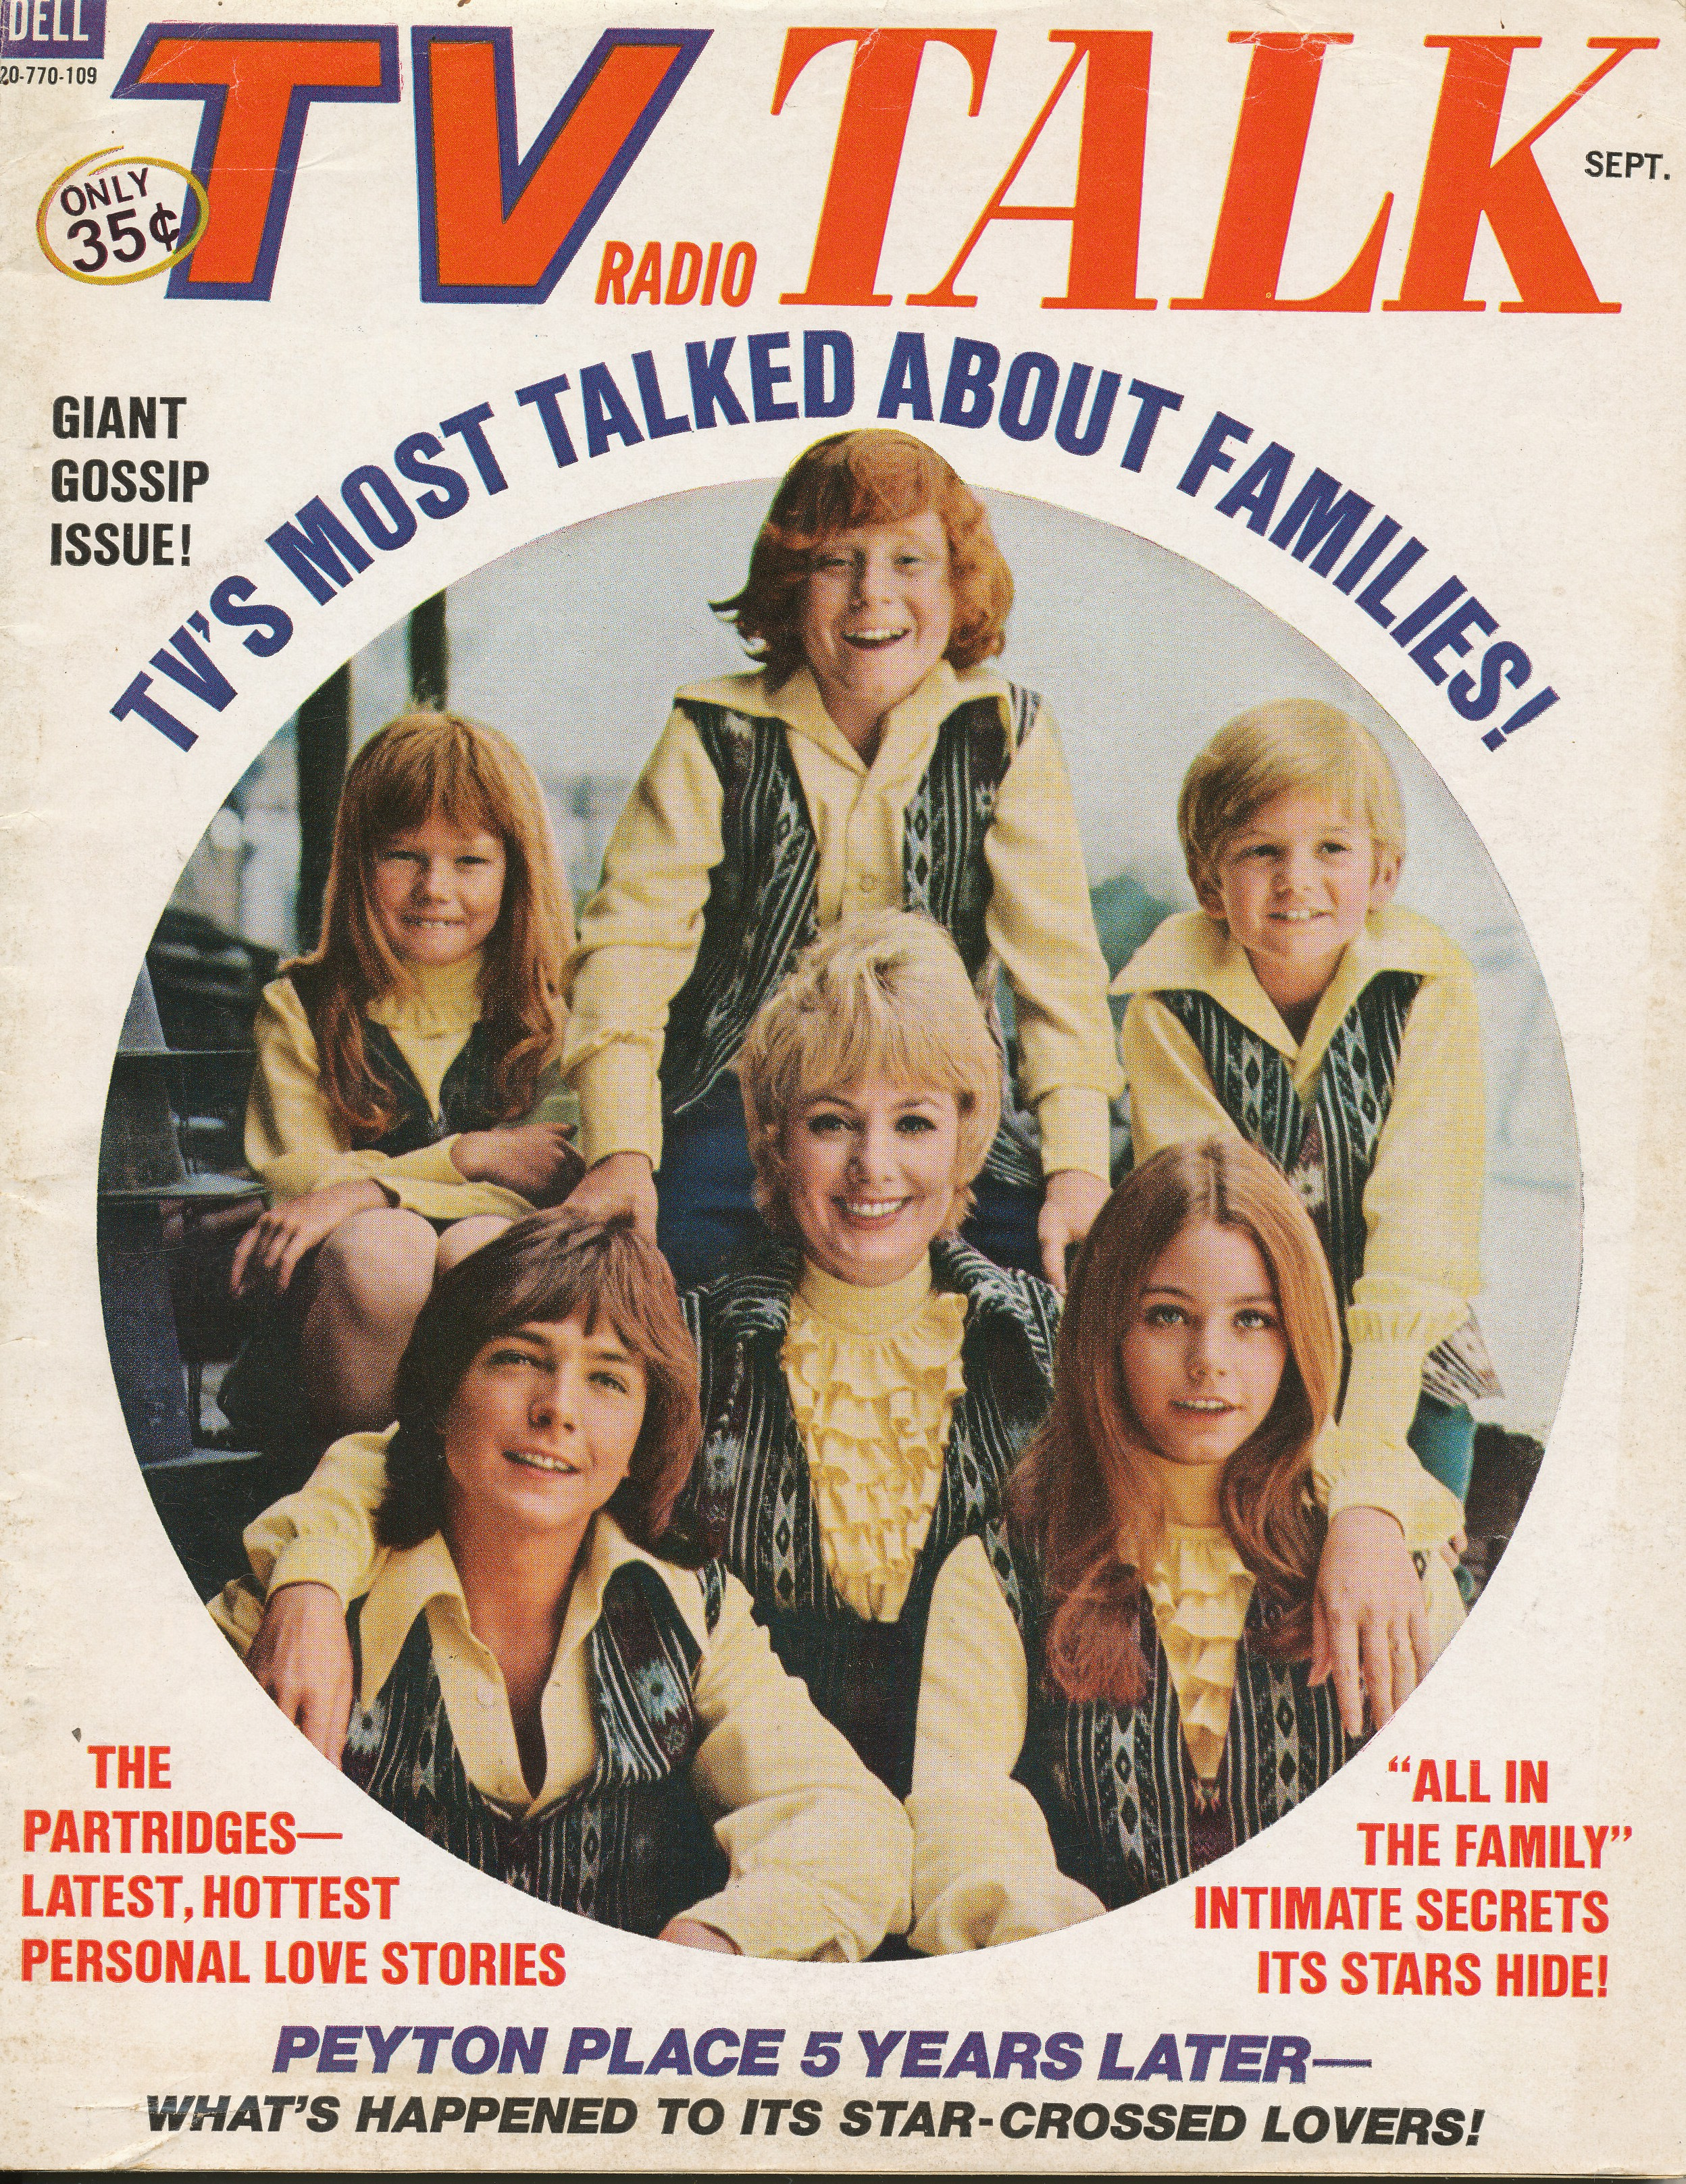 TV Radio Talk Sept. 1971 featuring The Partridges